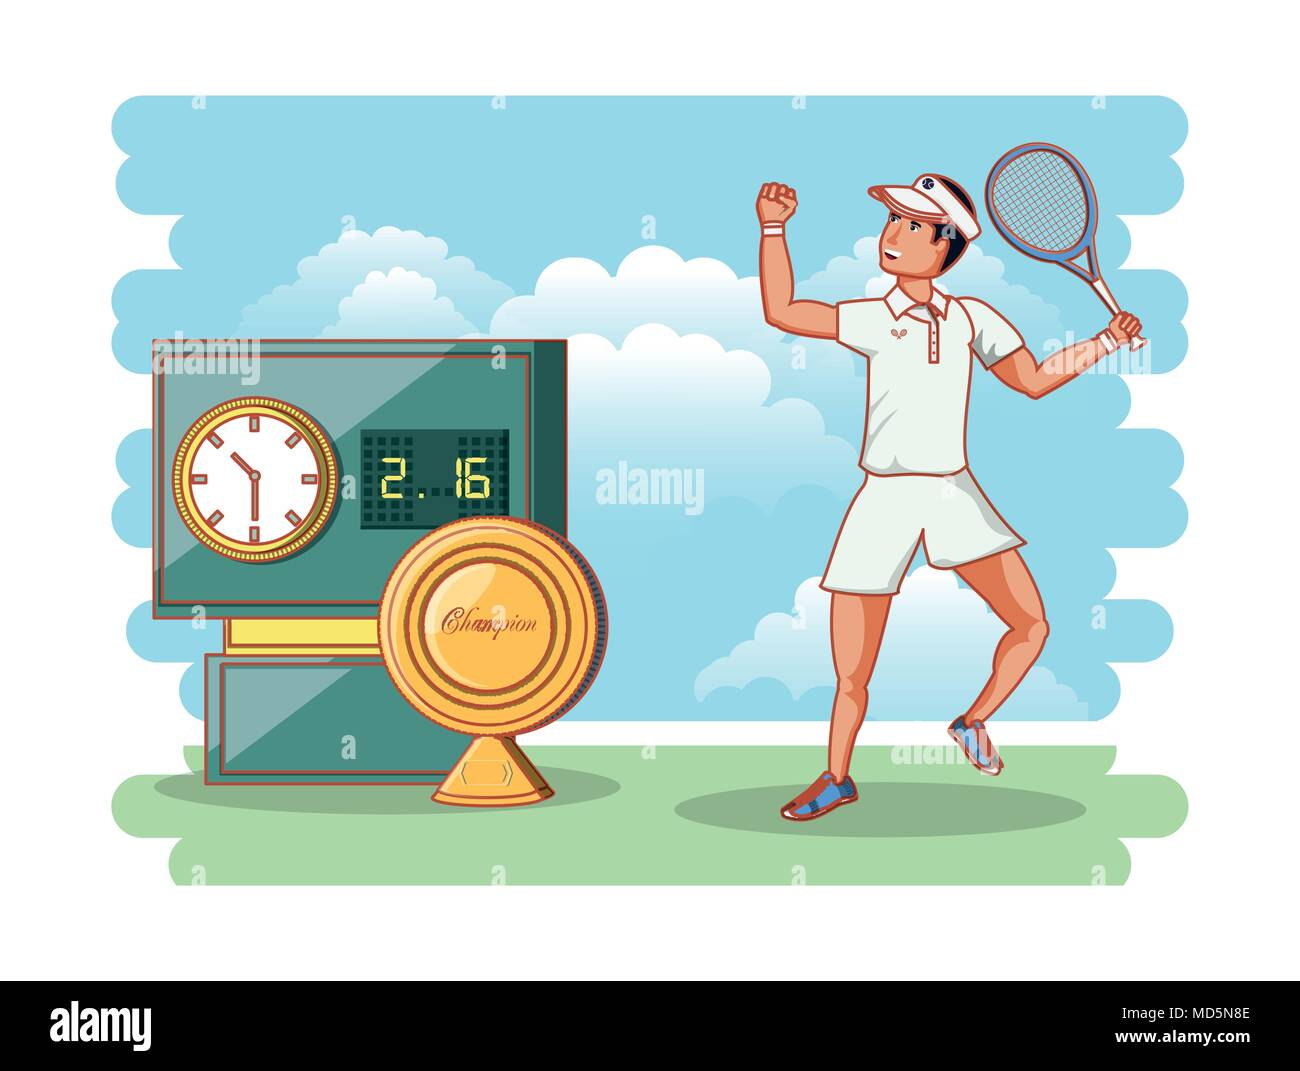 man playing tennis character vector illustration design - Stock Vector